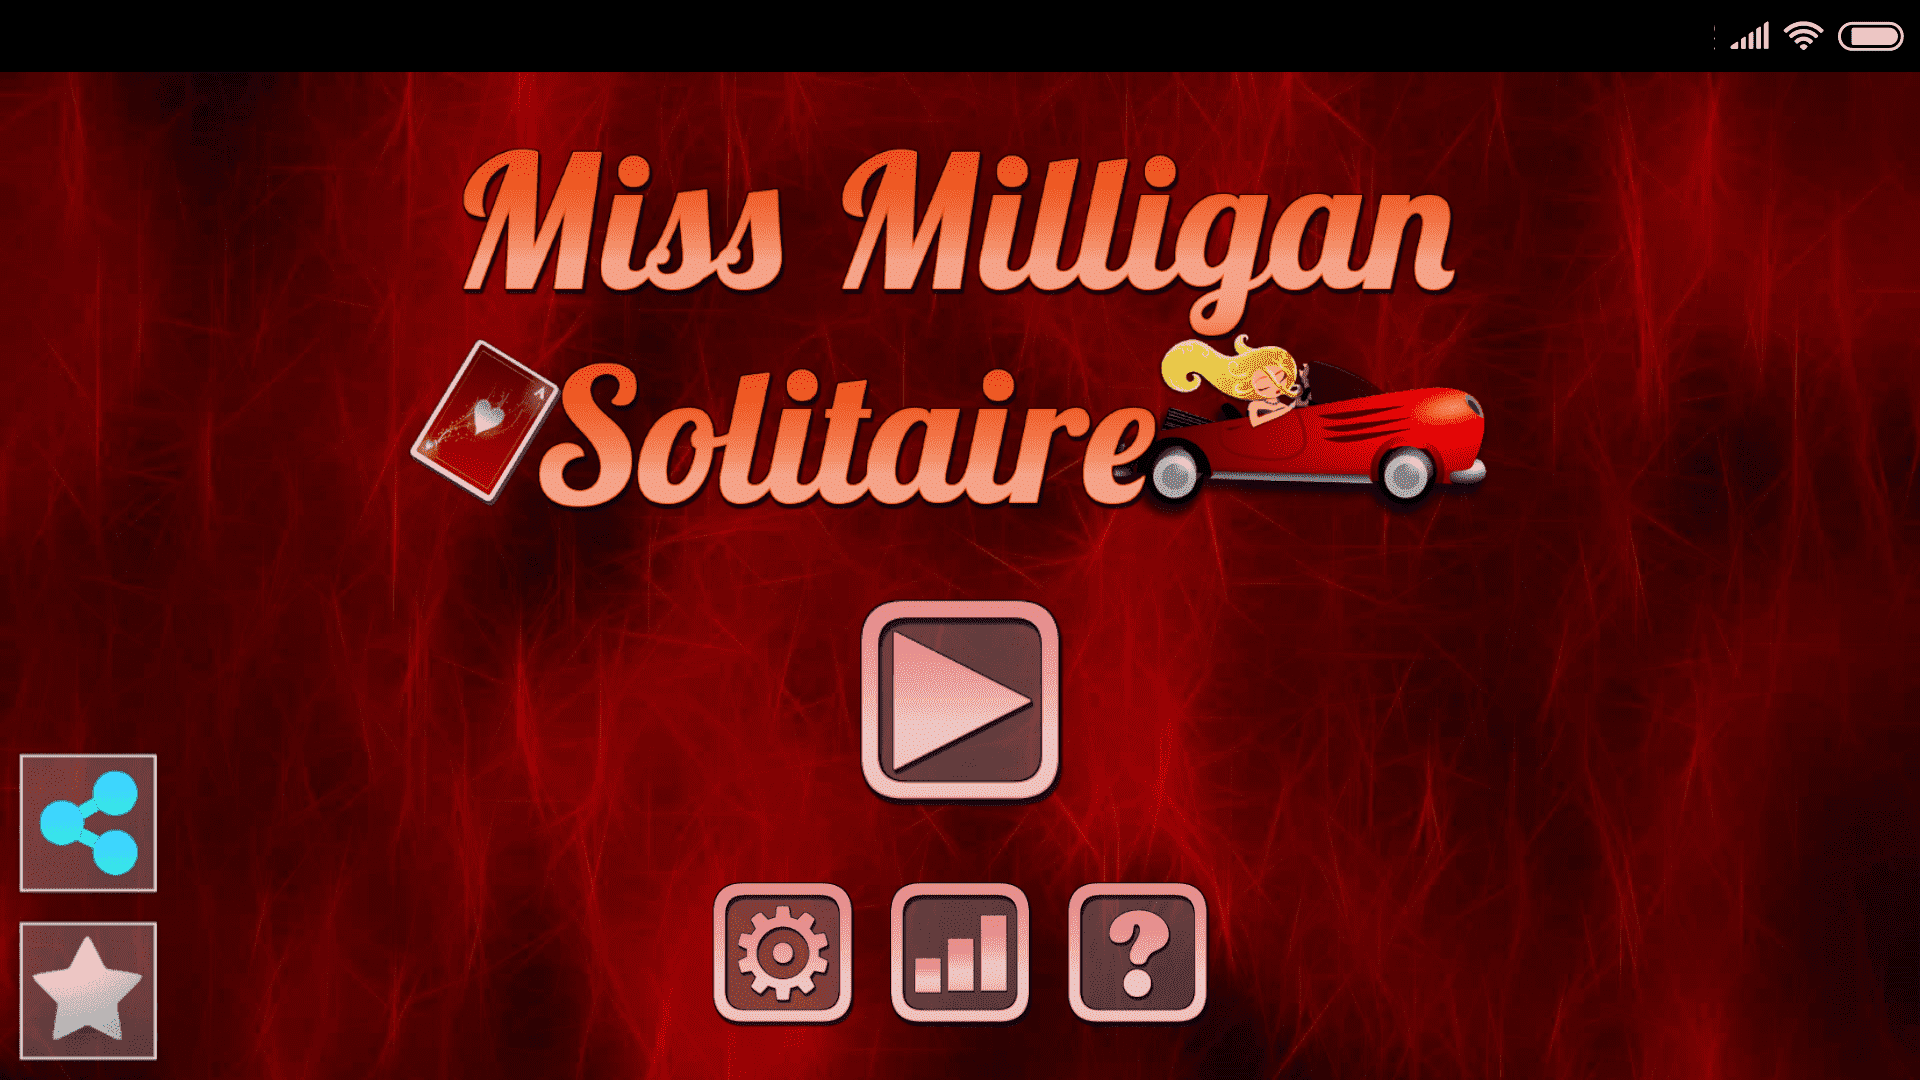 Miss Milligan Solitaire